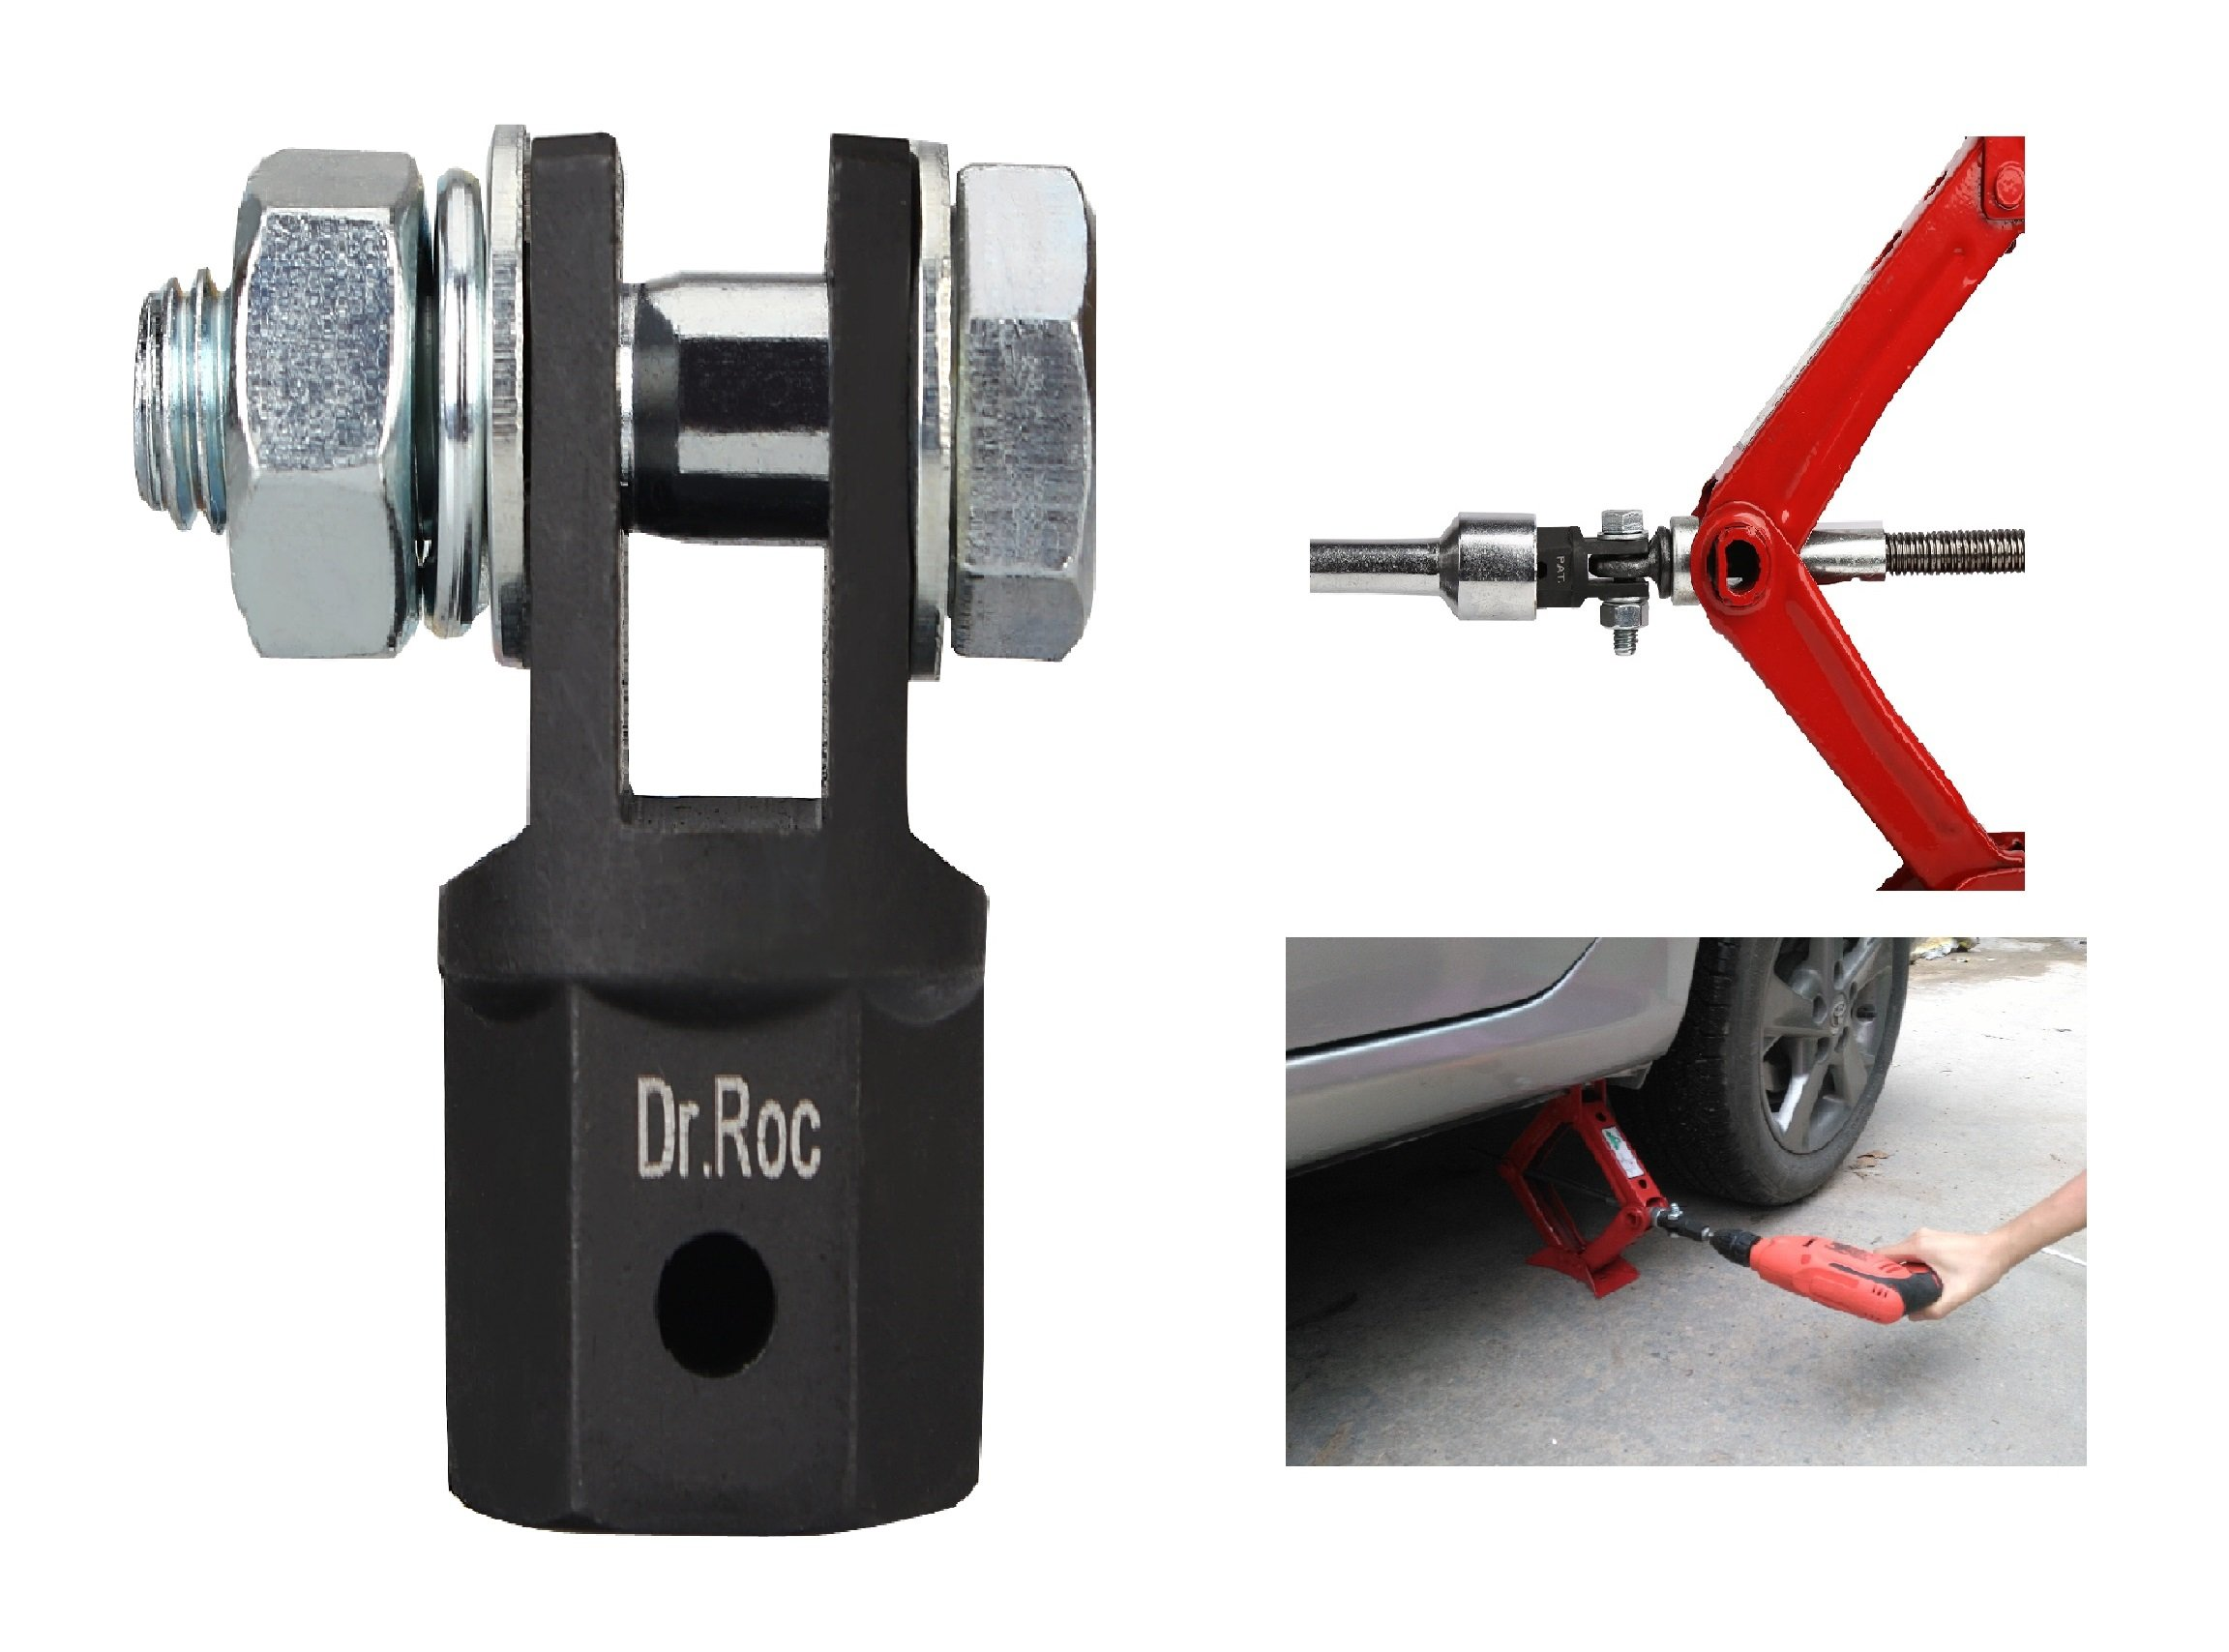 Dr.Roc Scissor Jack Adapter for Use with 1/2 Inch Drive Impact Wrench or 13/16 Inch Lug Wrench Scissor Jack Adaptor for Automotive Jack RV or Trailer Leveling Jacks Use Drill or Wrench by Dr.Roc